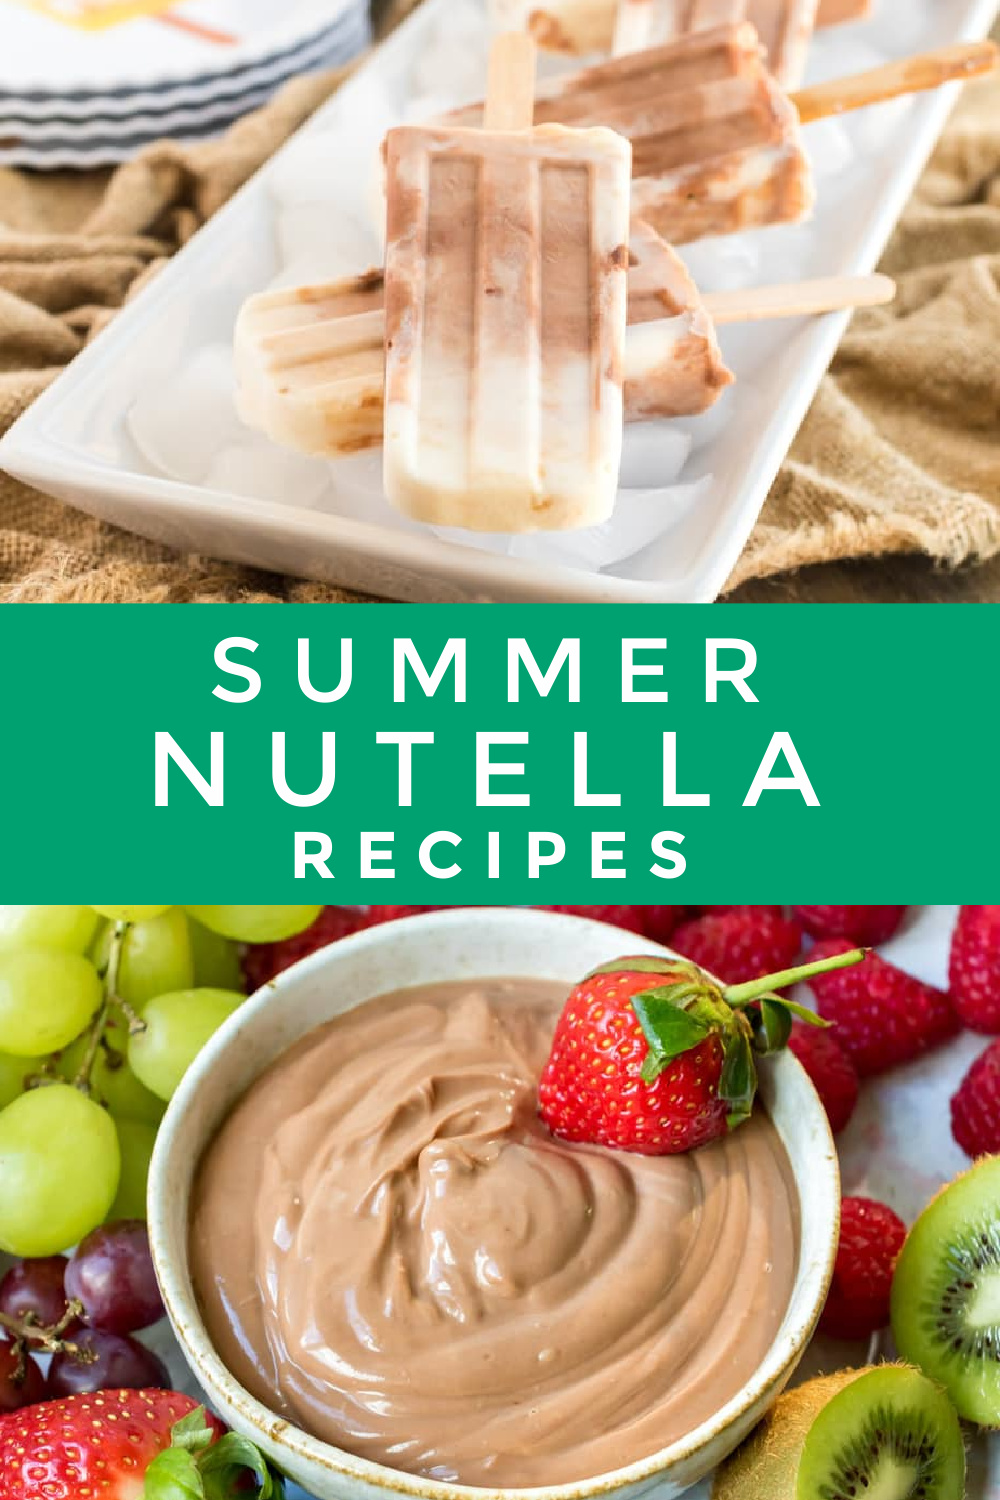 """Images of dishes made with Nutella (chocolate hazelnut spread). Text reads """"Summer Nutella Recipes"""""""